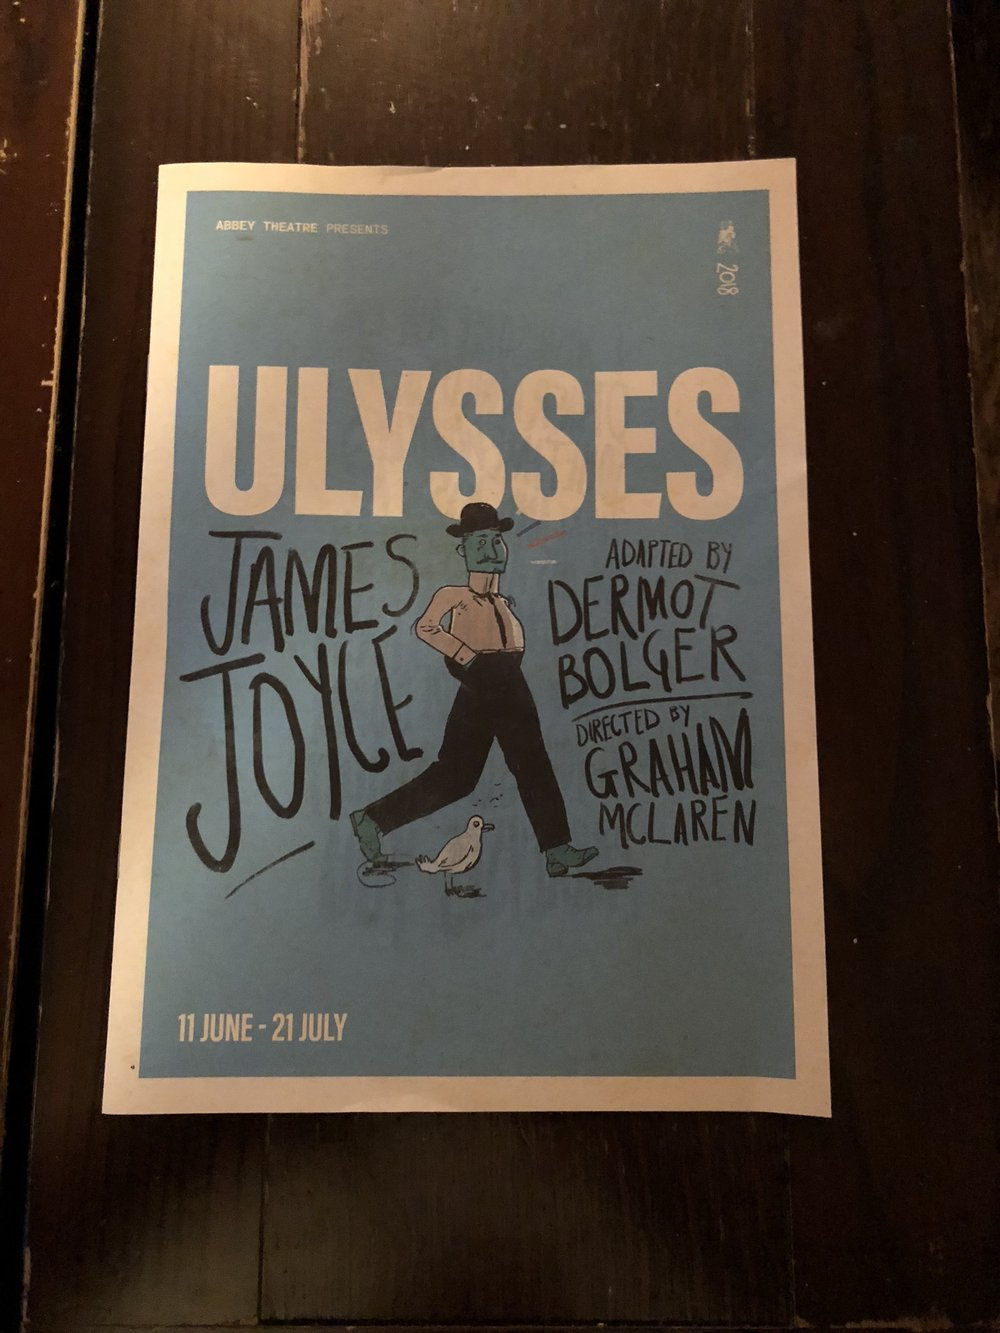 As part of our literature class, we went to the theatre! We read part of Ulysses in class. I loved being able to see it in person.